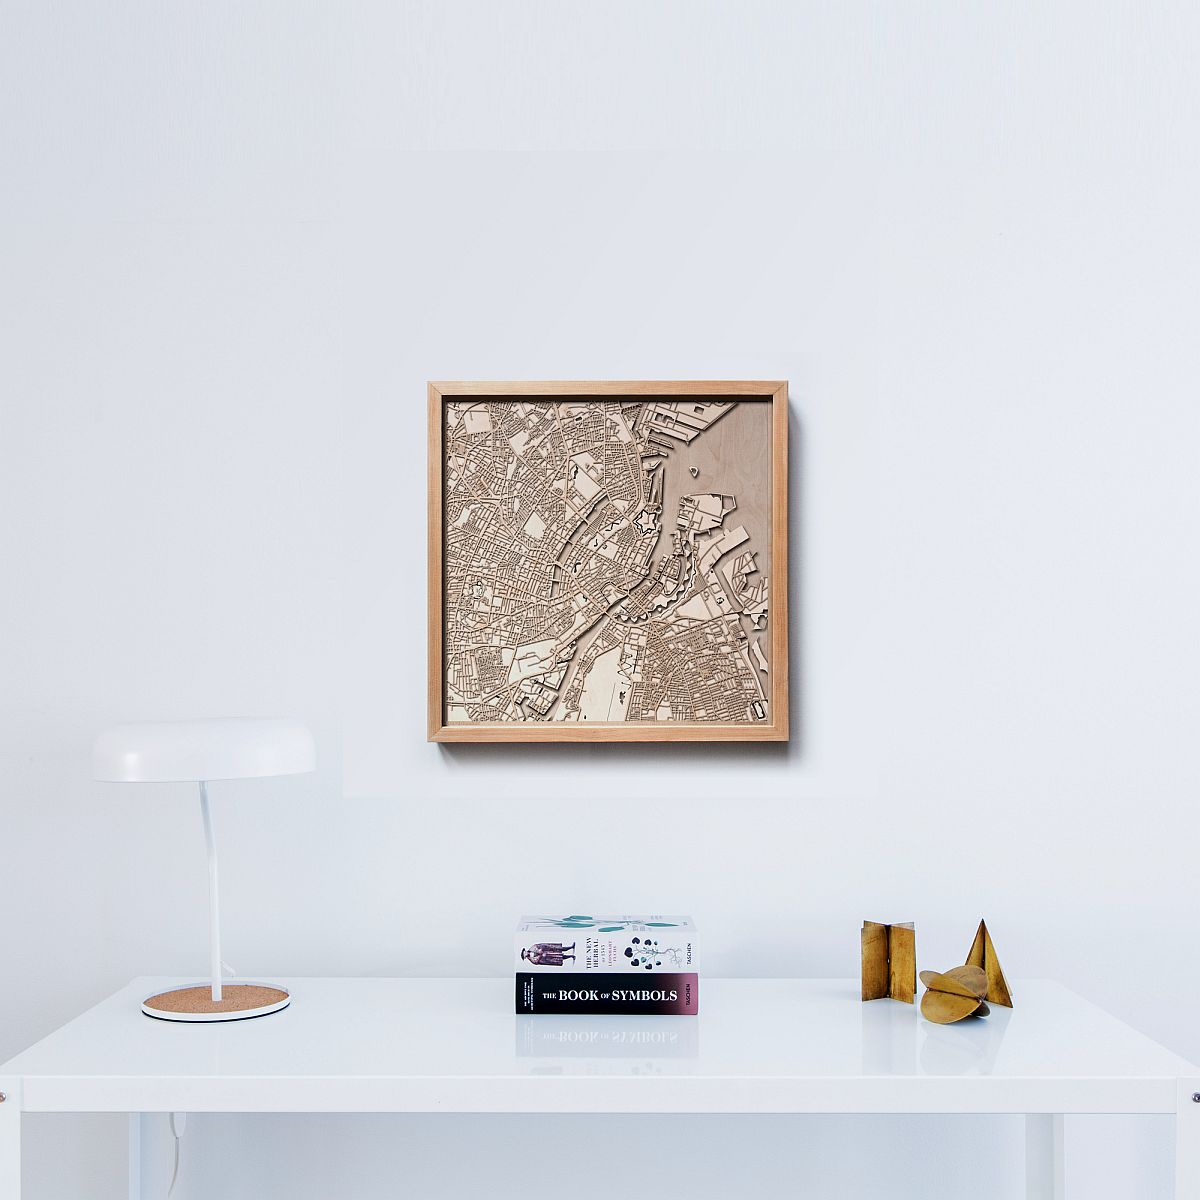 Turn the framed 3D maps in wood into the focal point of the office space